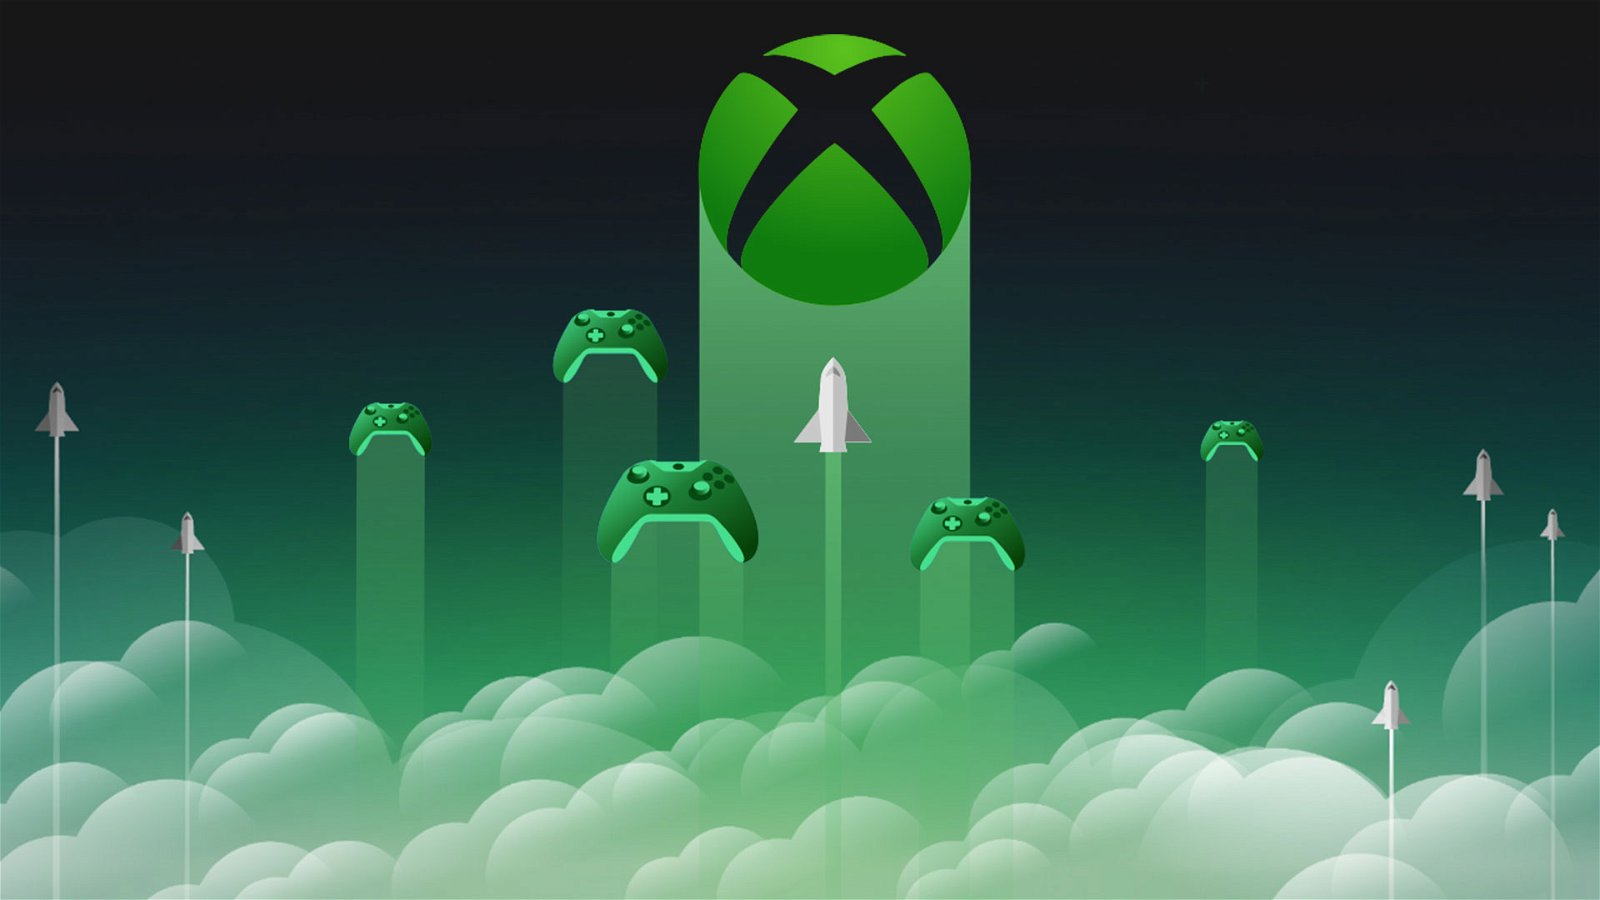 Xbox is Expanding to More Devices through xCloud